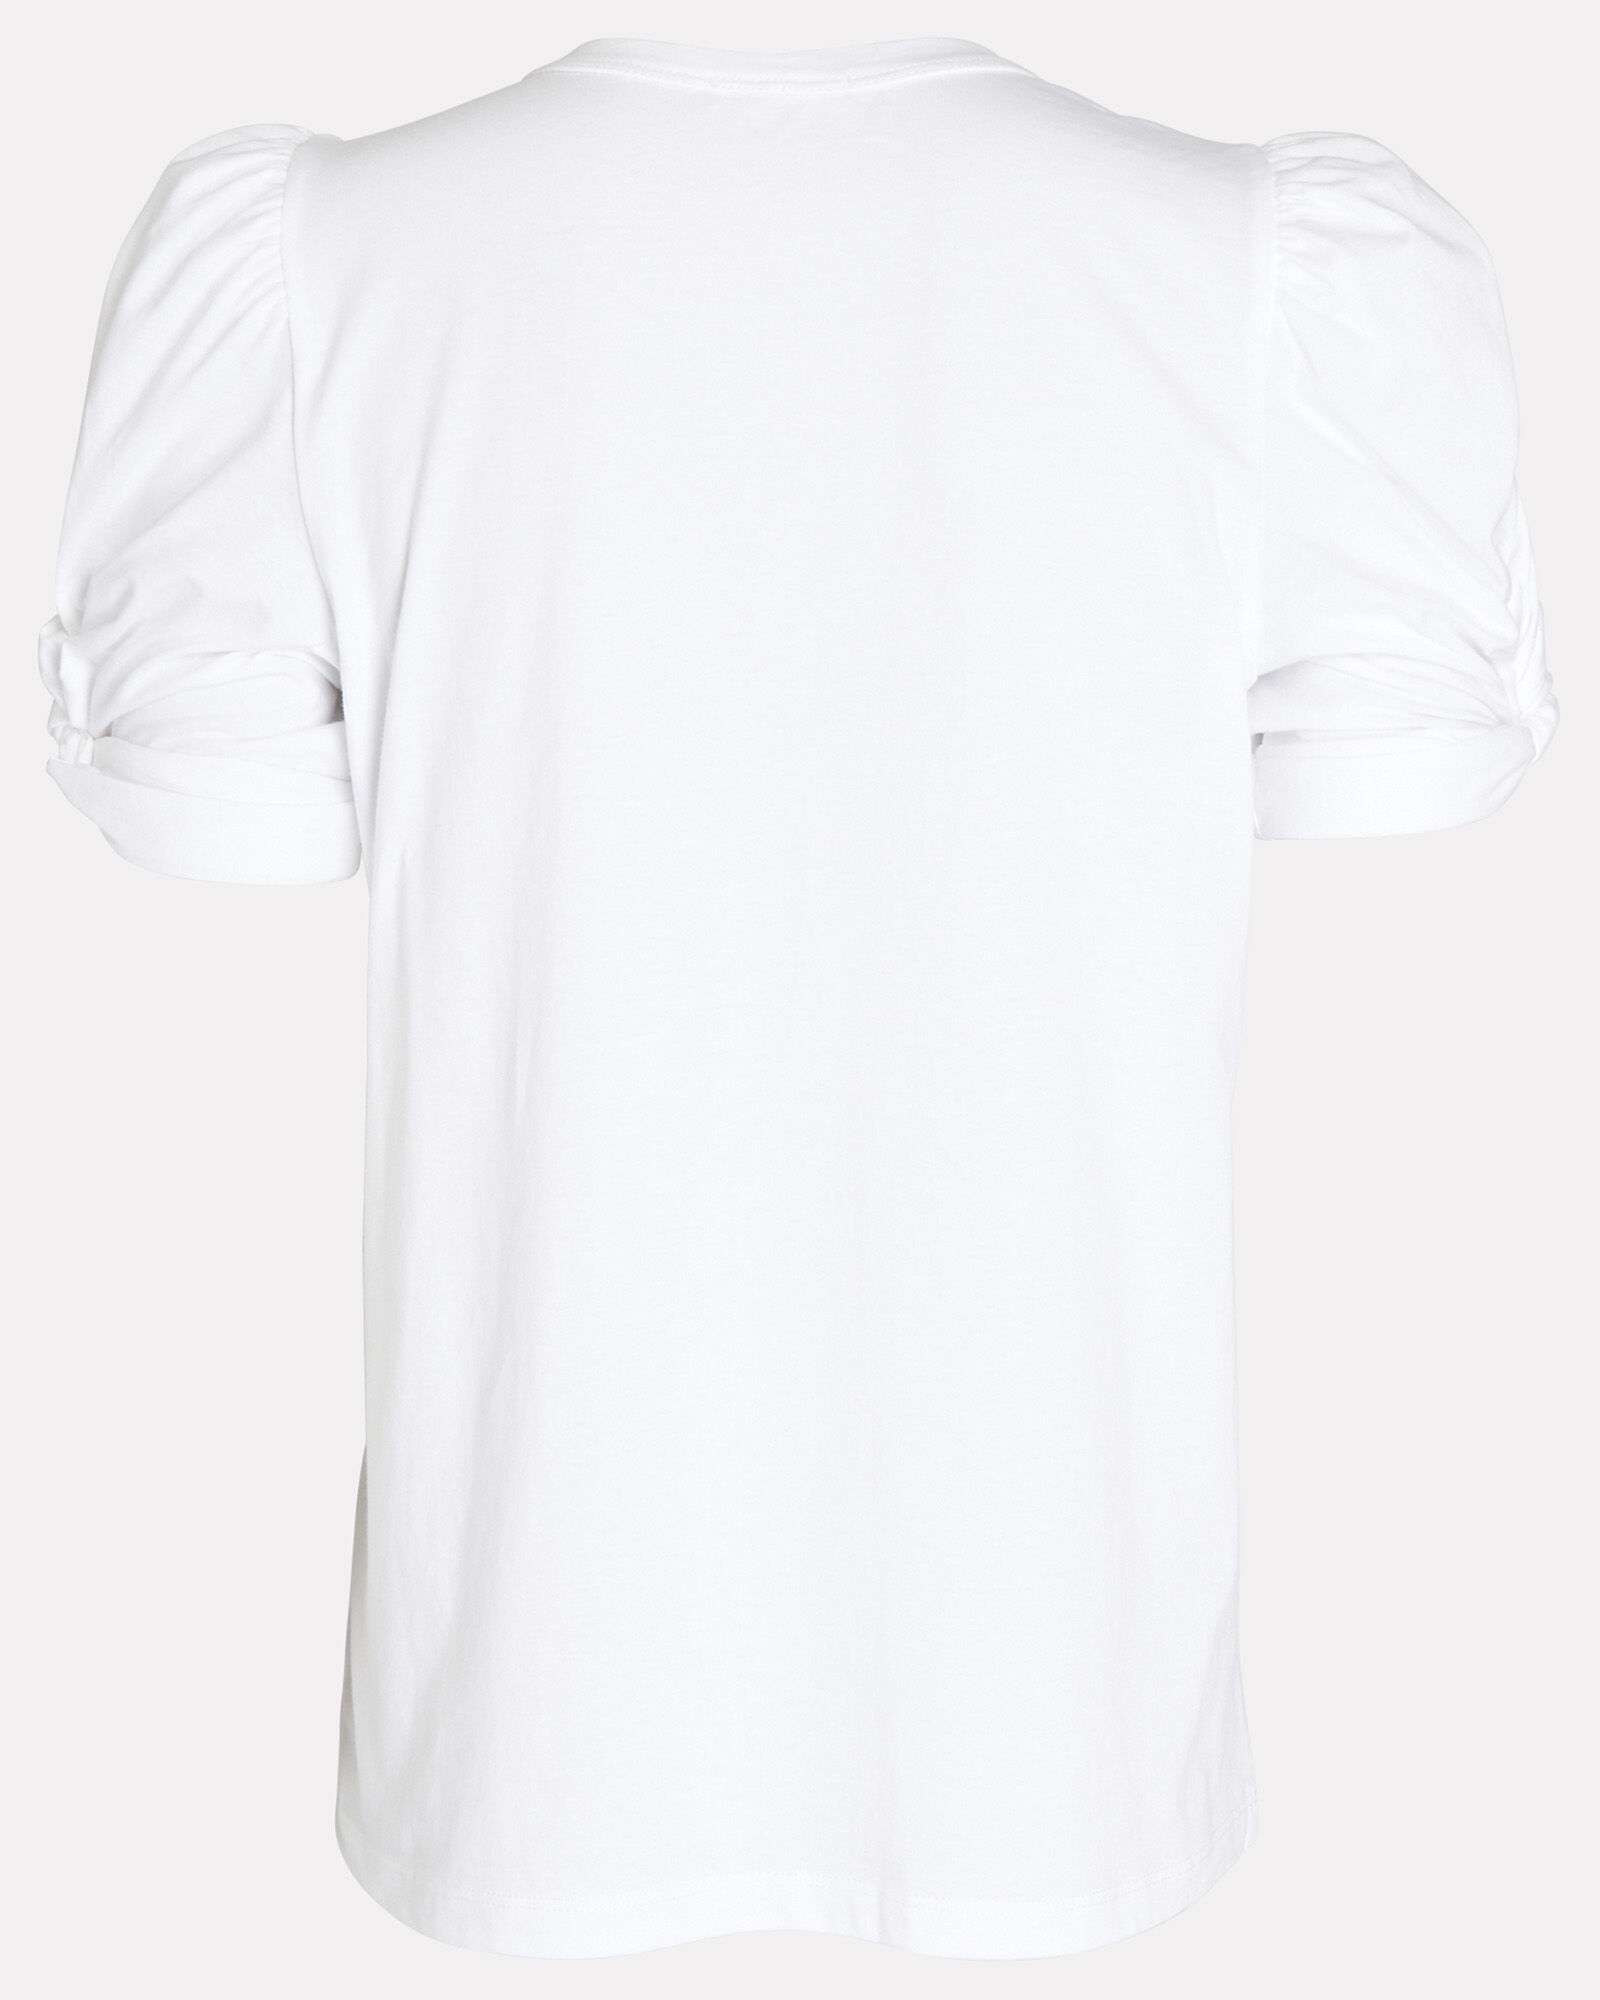 Kati Puff Sleeve T-Shirt, WHITE, hi-res